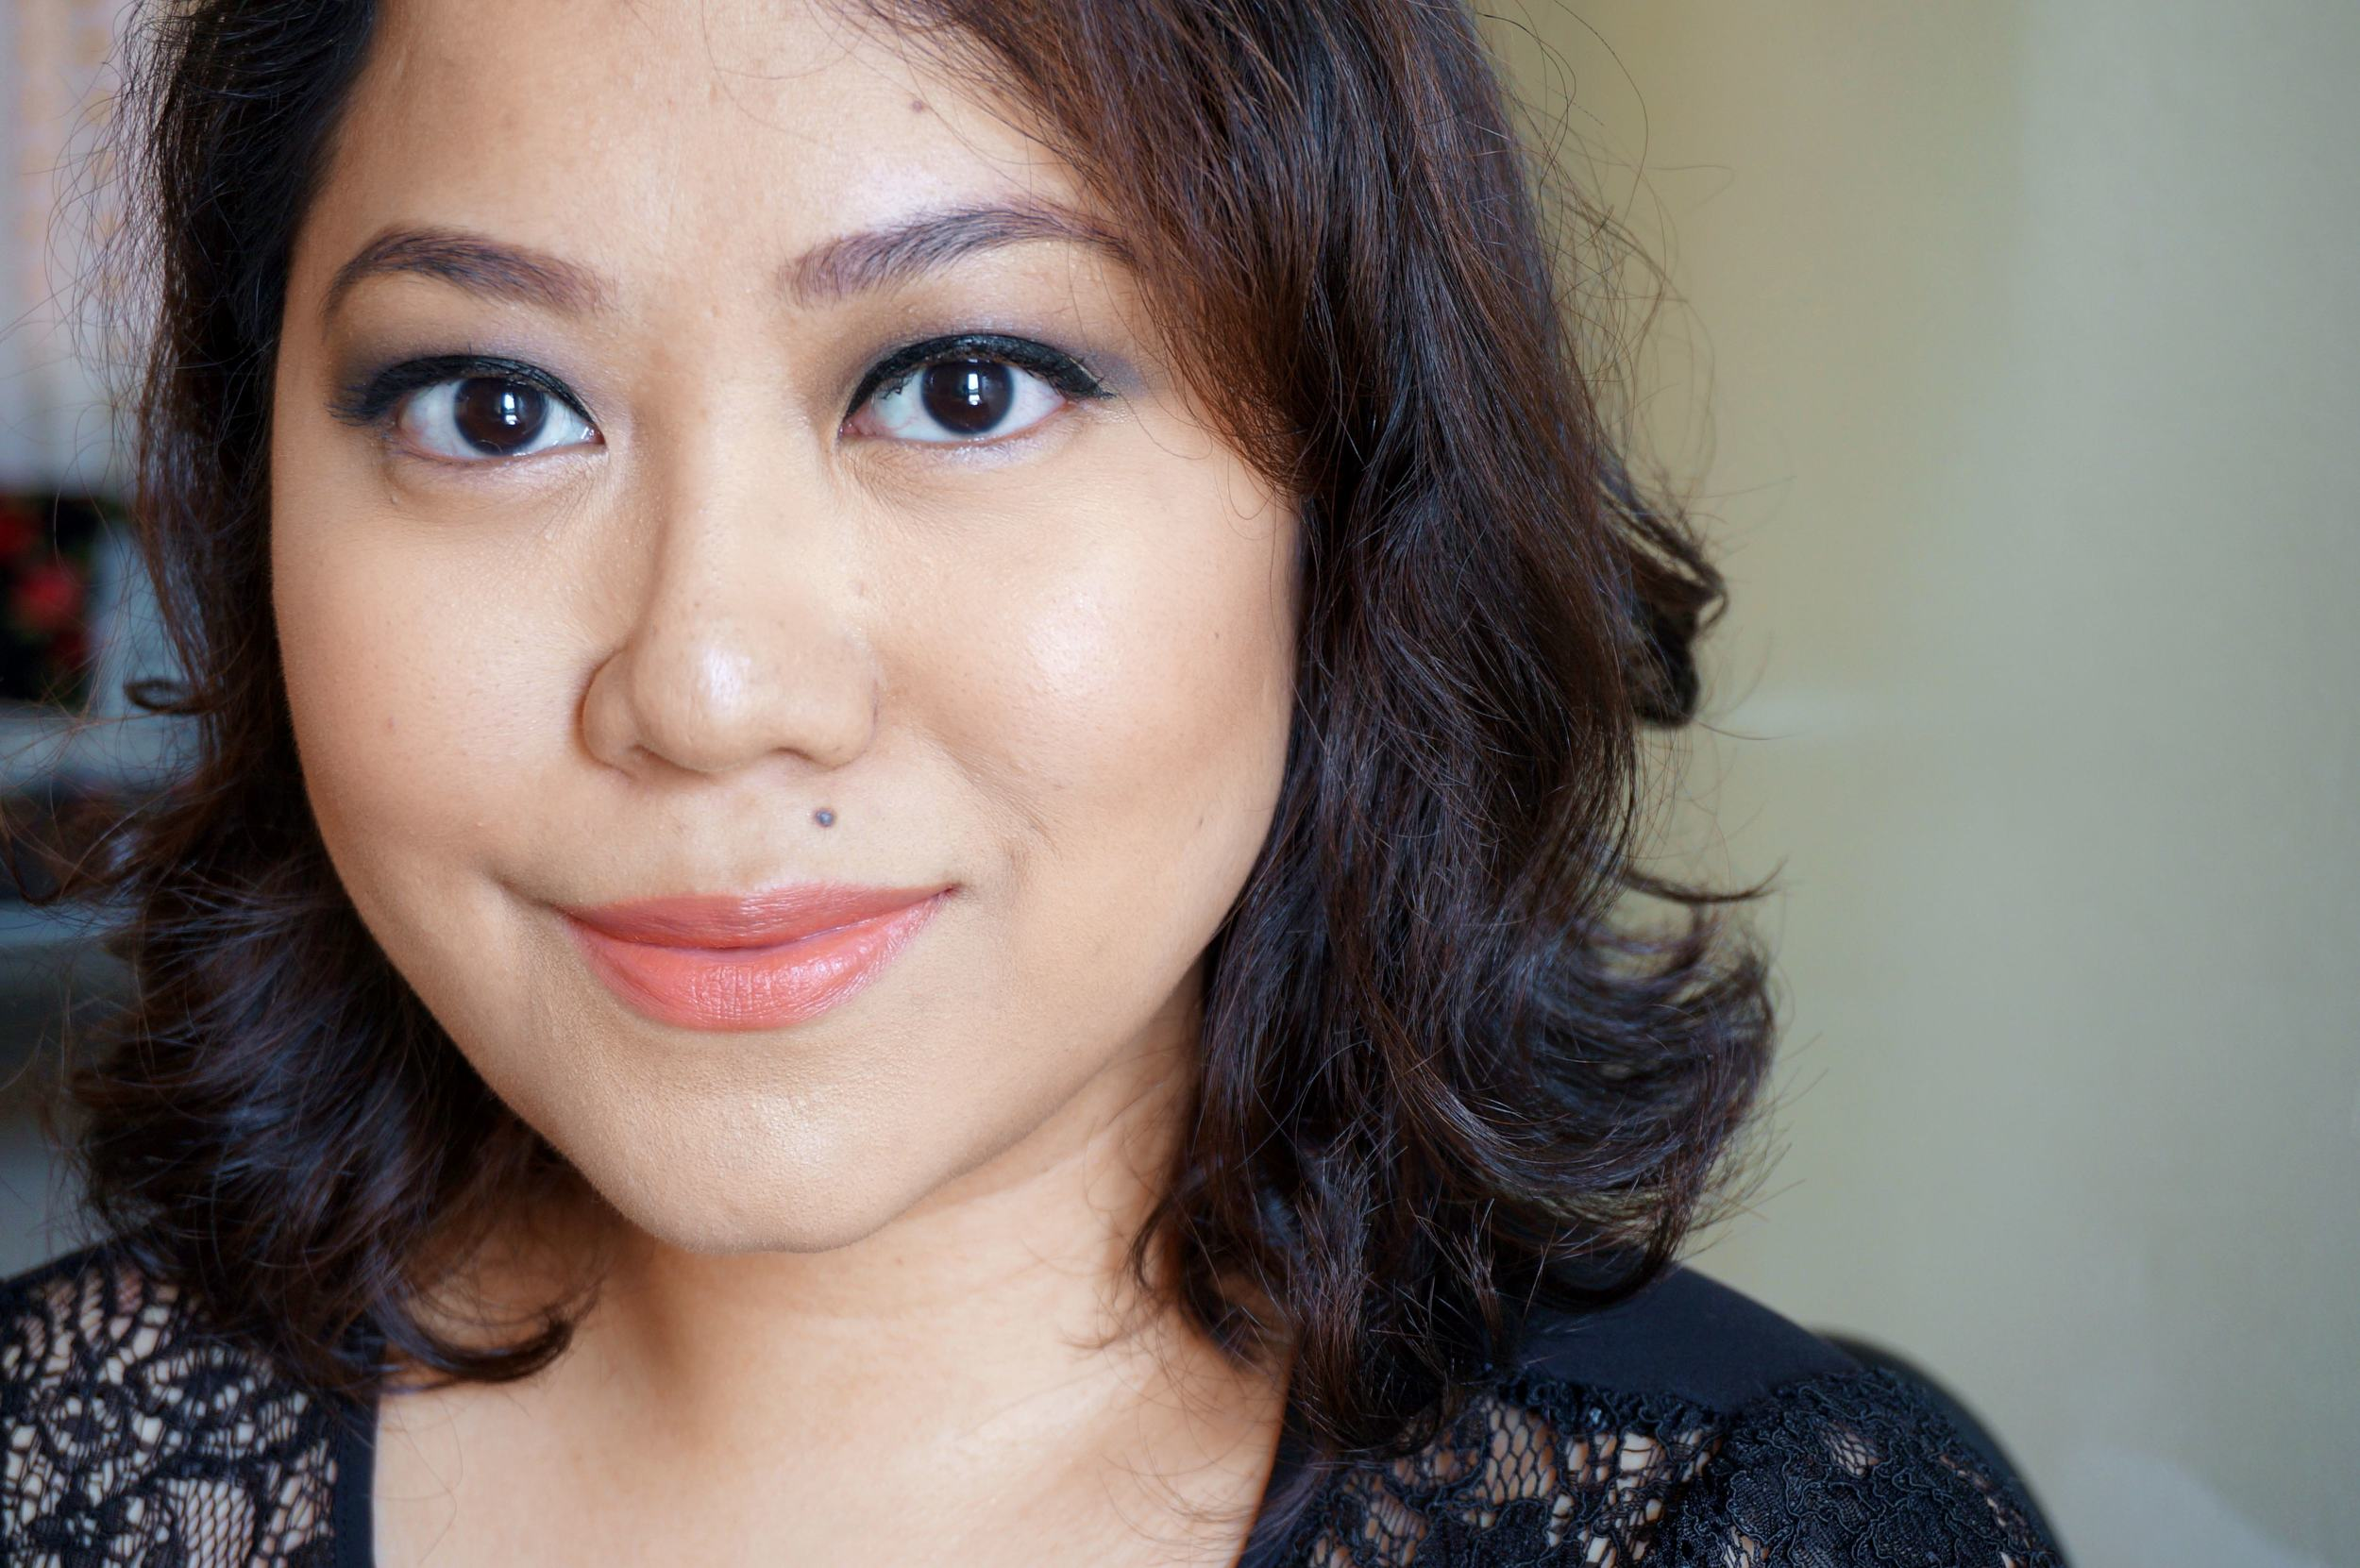 Here's Earthy Beige on my lips. It gives a demure and elegant vibe to the look, which makes it perfect for day time events.